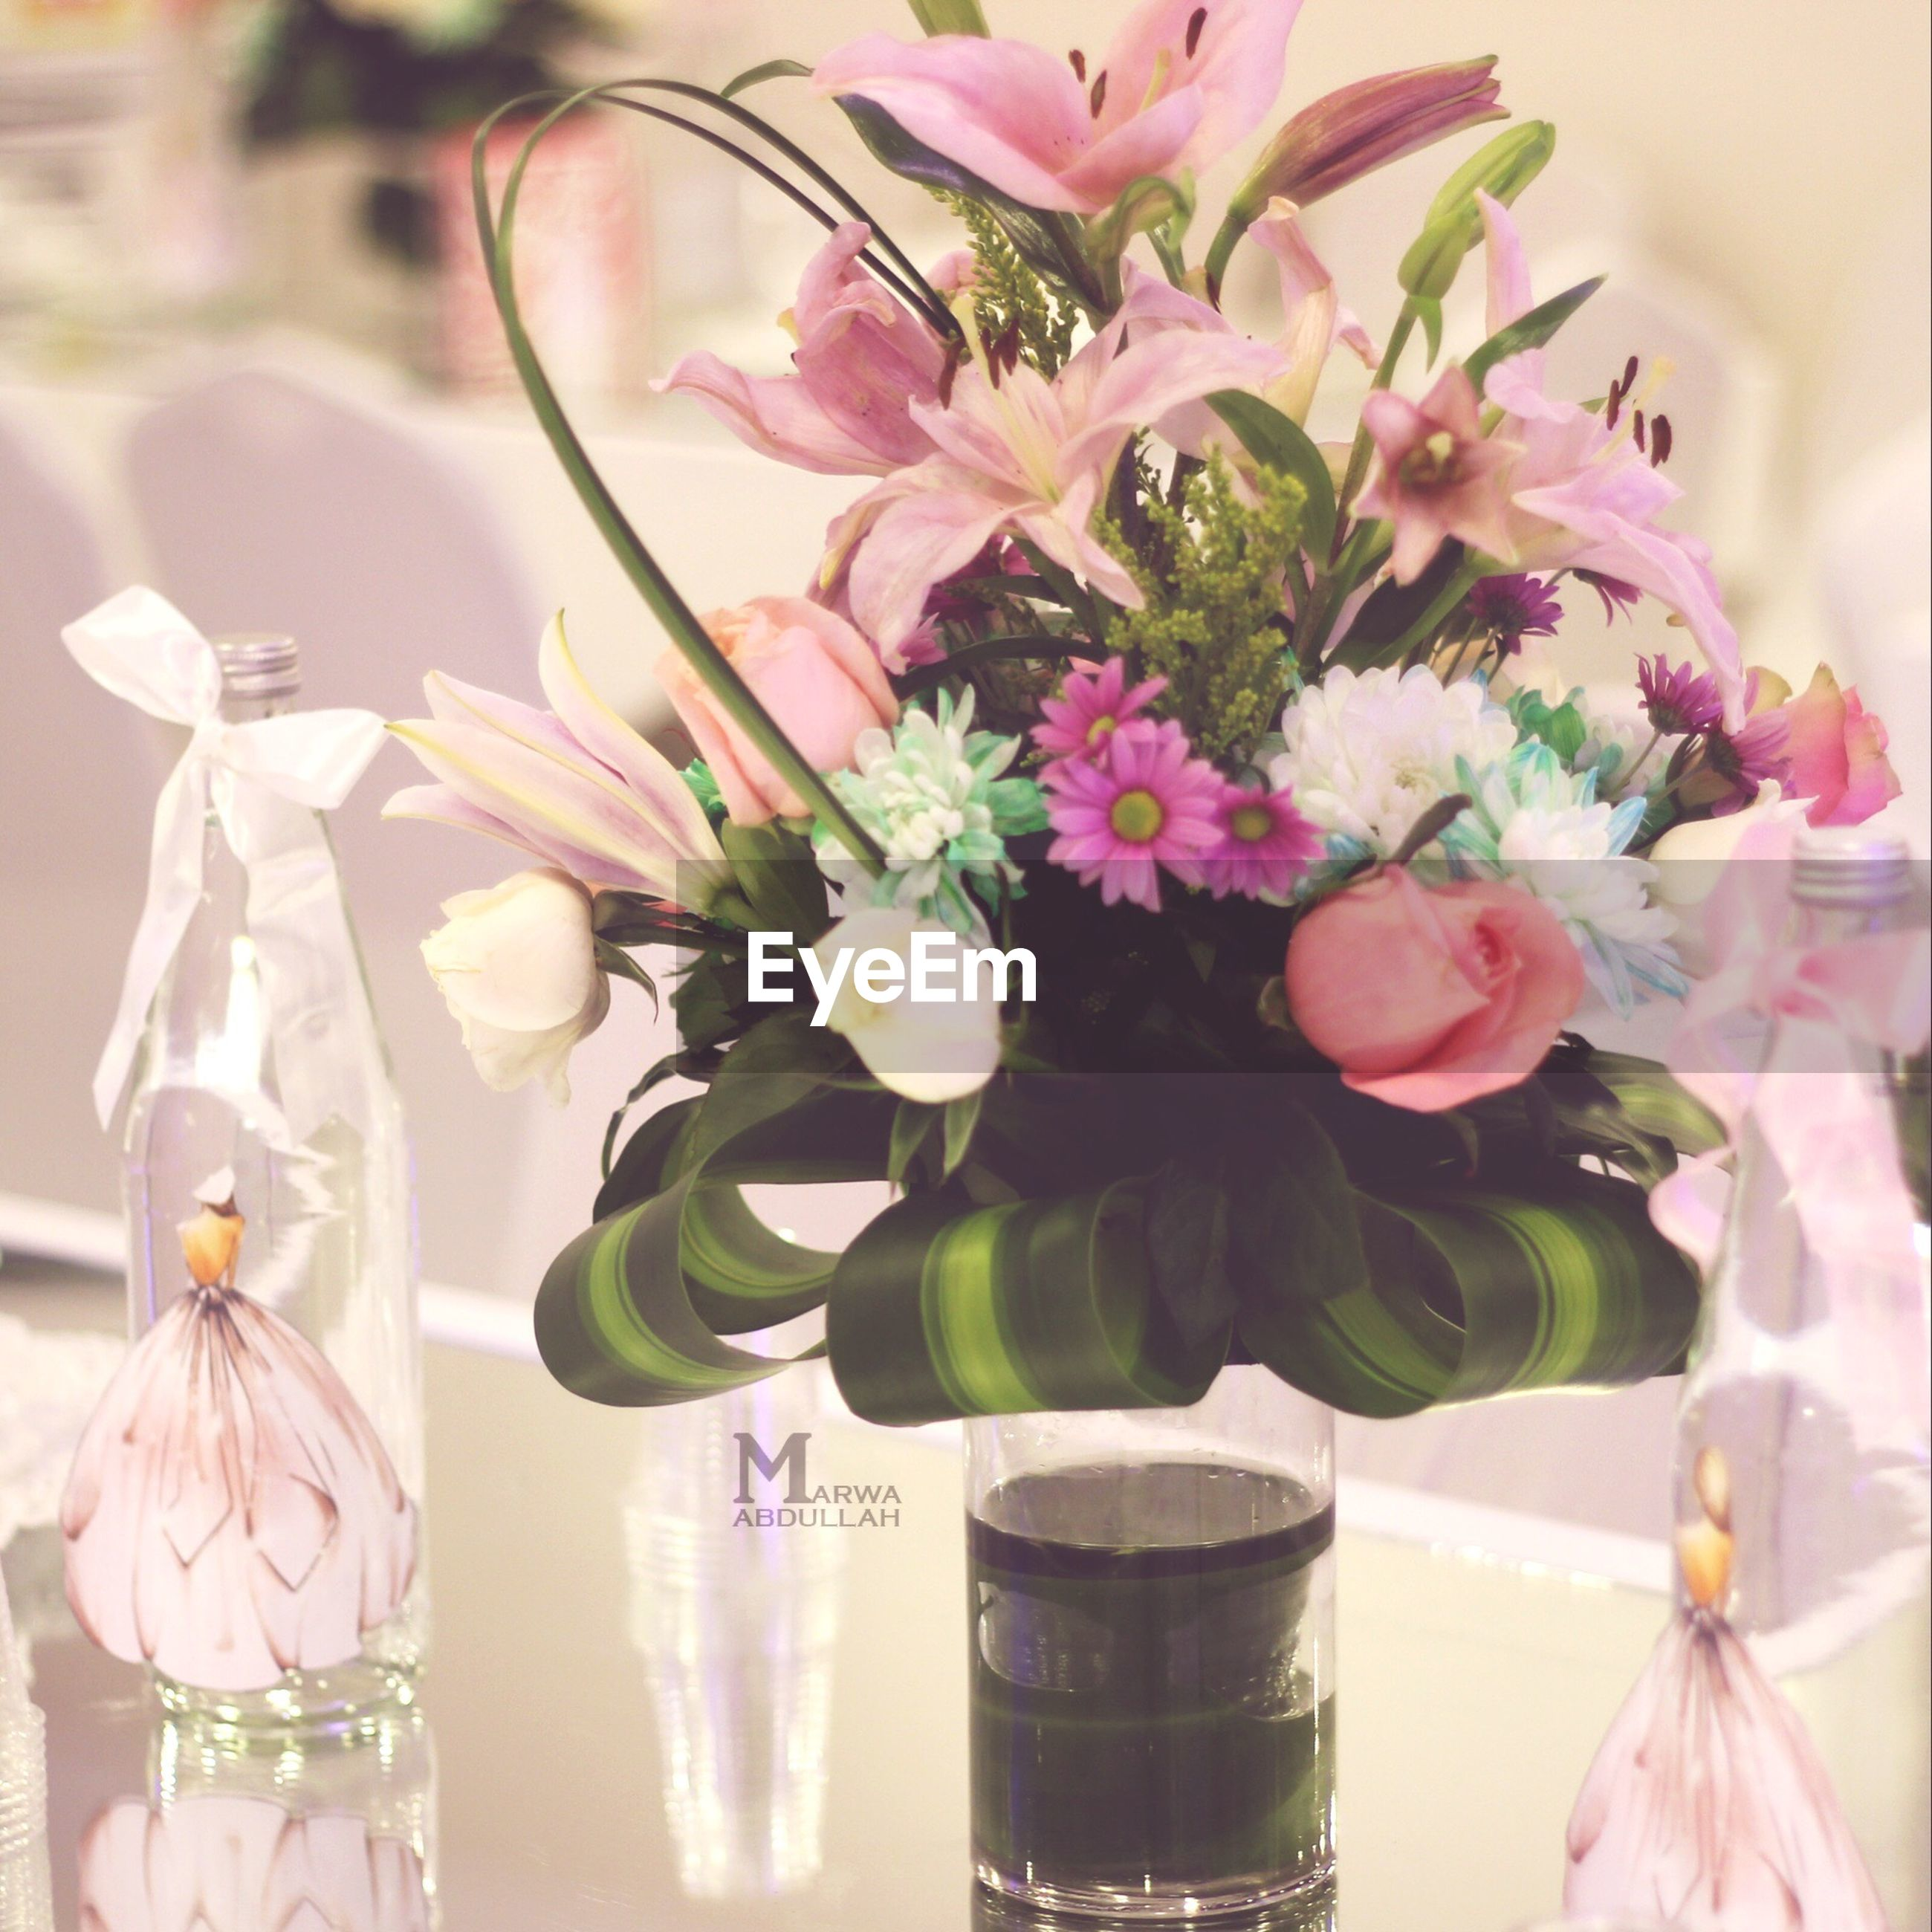 flower, indoors, freshness, vase, fragility, petal, decoration, flower arrangement, glass - material, close-up, table, pink color, flower head, still life, beauty in nature, bouquet, variation, bunch of flowers, focus on foreground, nature